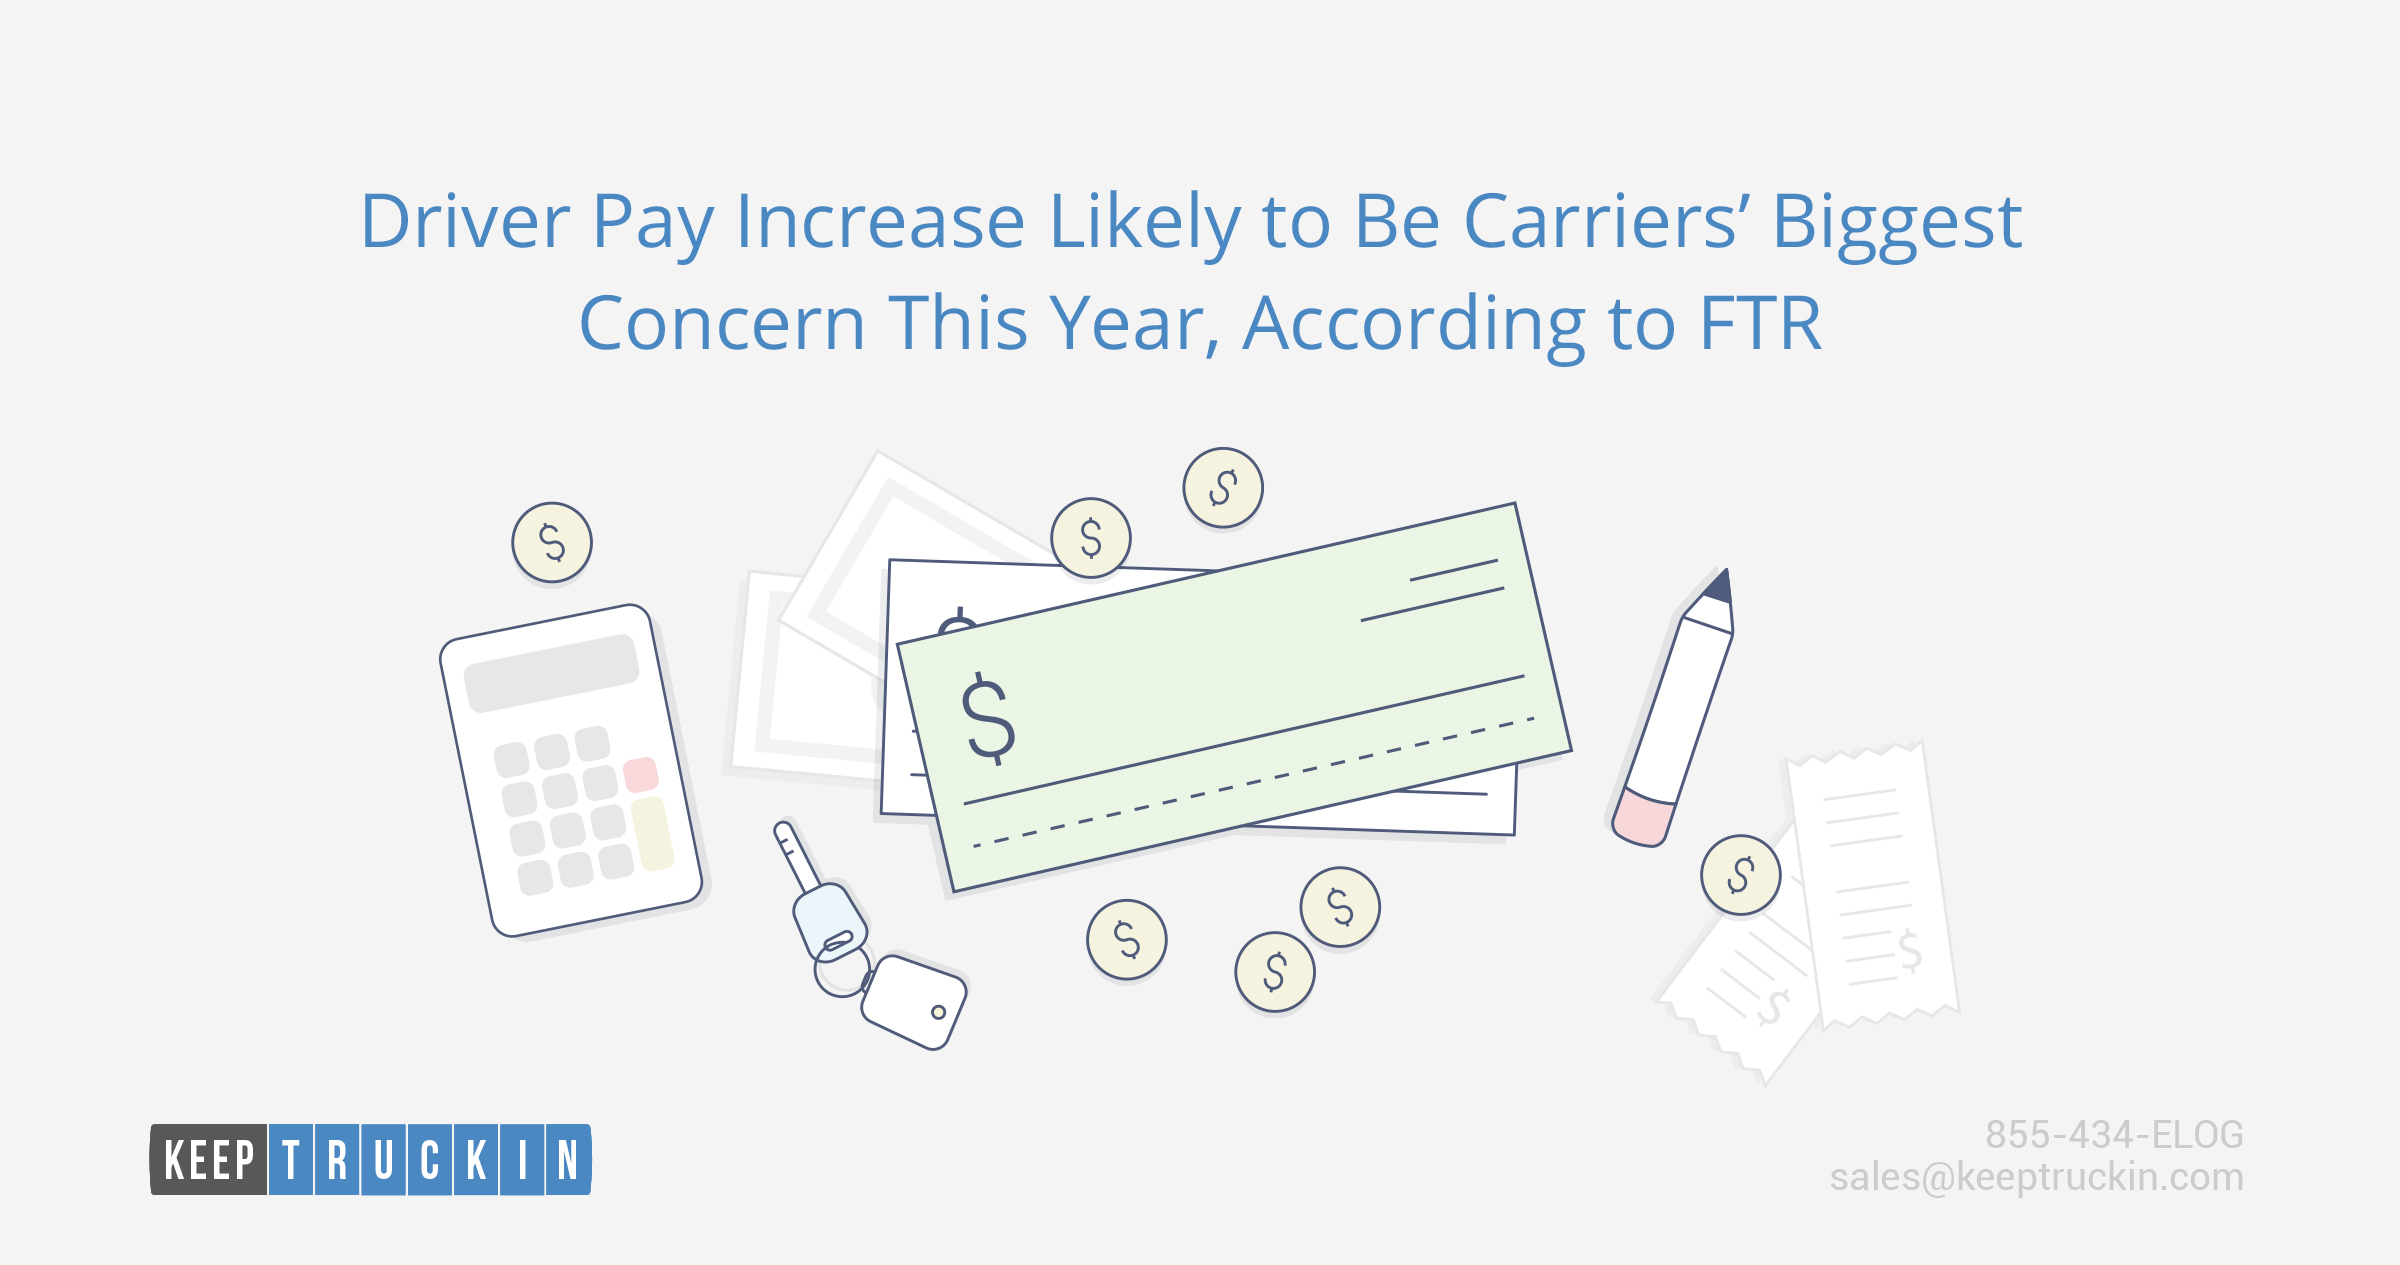 Driver pay increase likely to be carriers' biggest concern this year, according to FTR